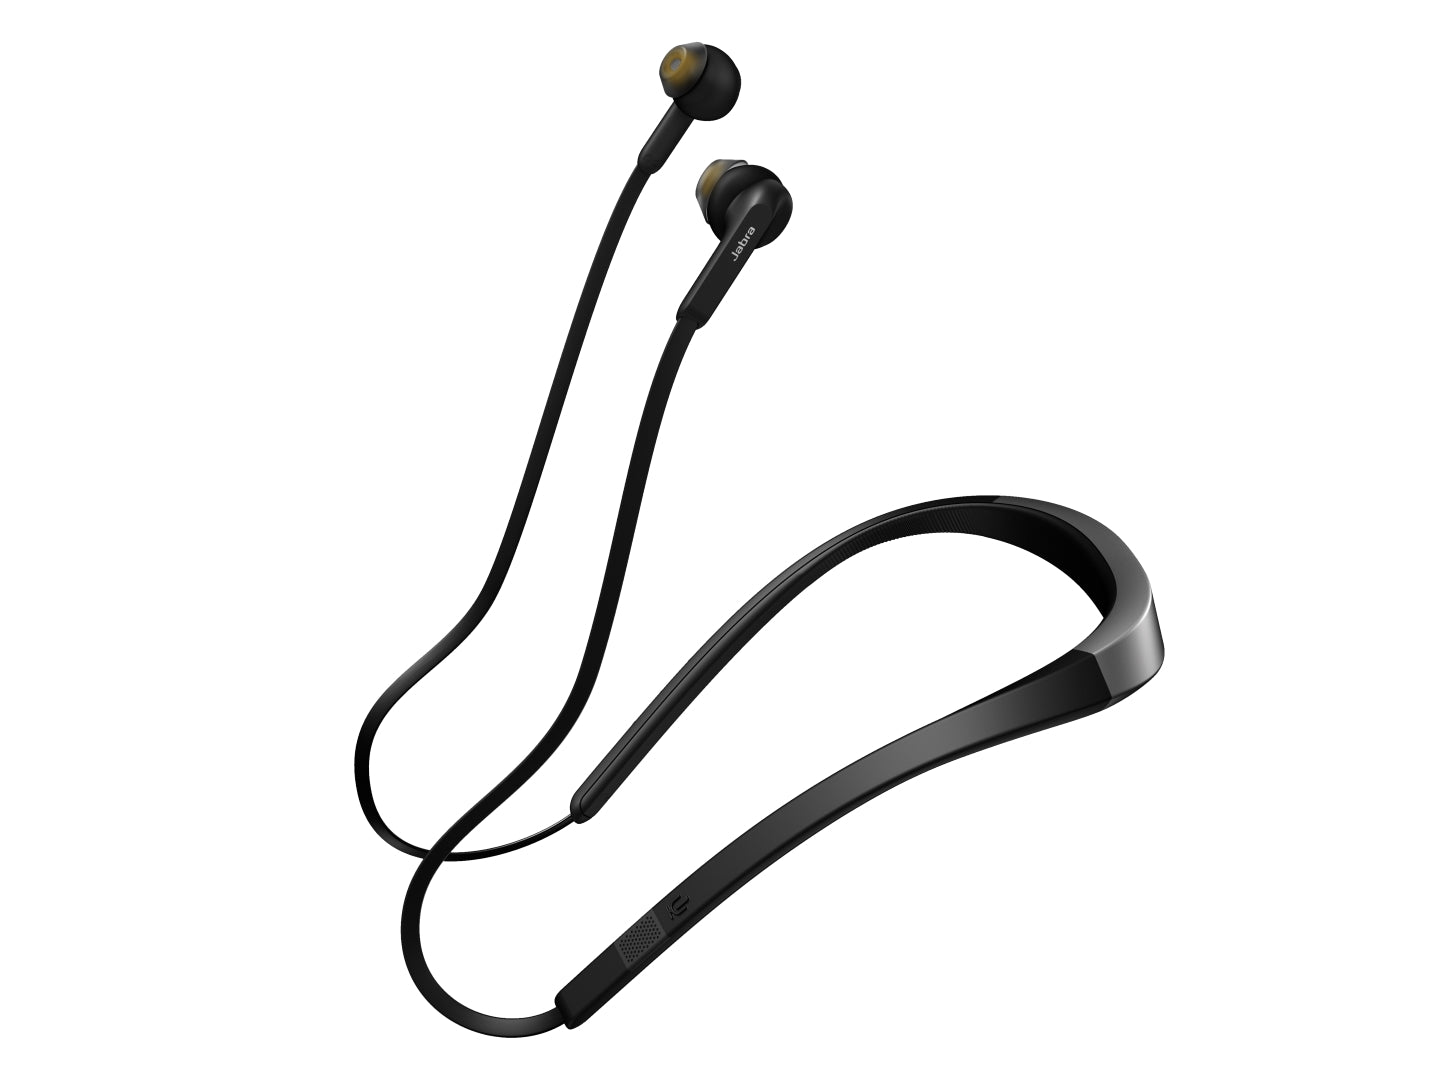 Jabra Elite 25e - Jaben - The Little Headphone Store